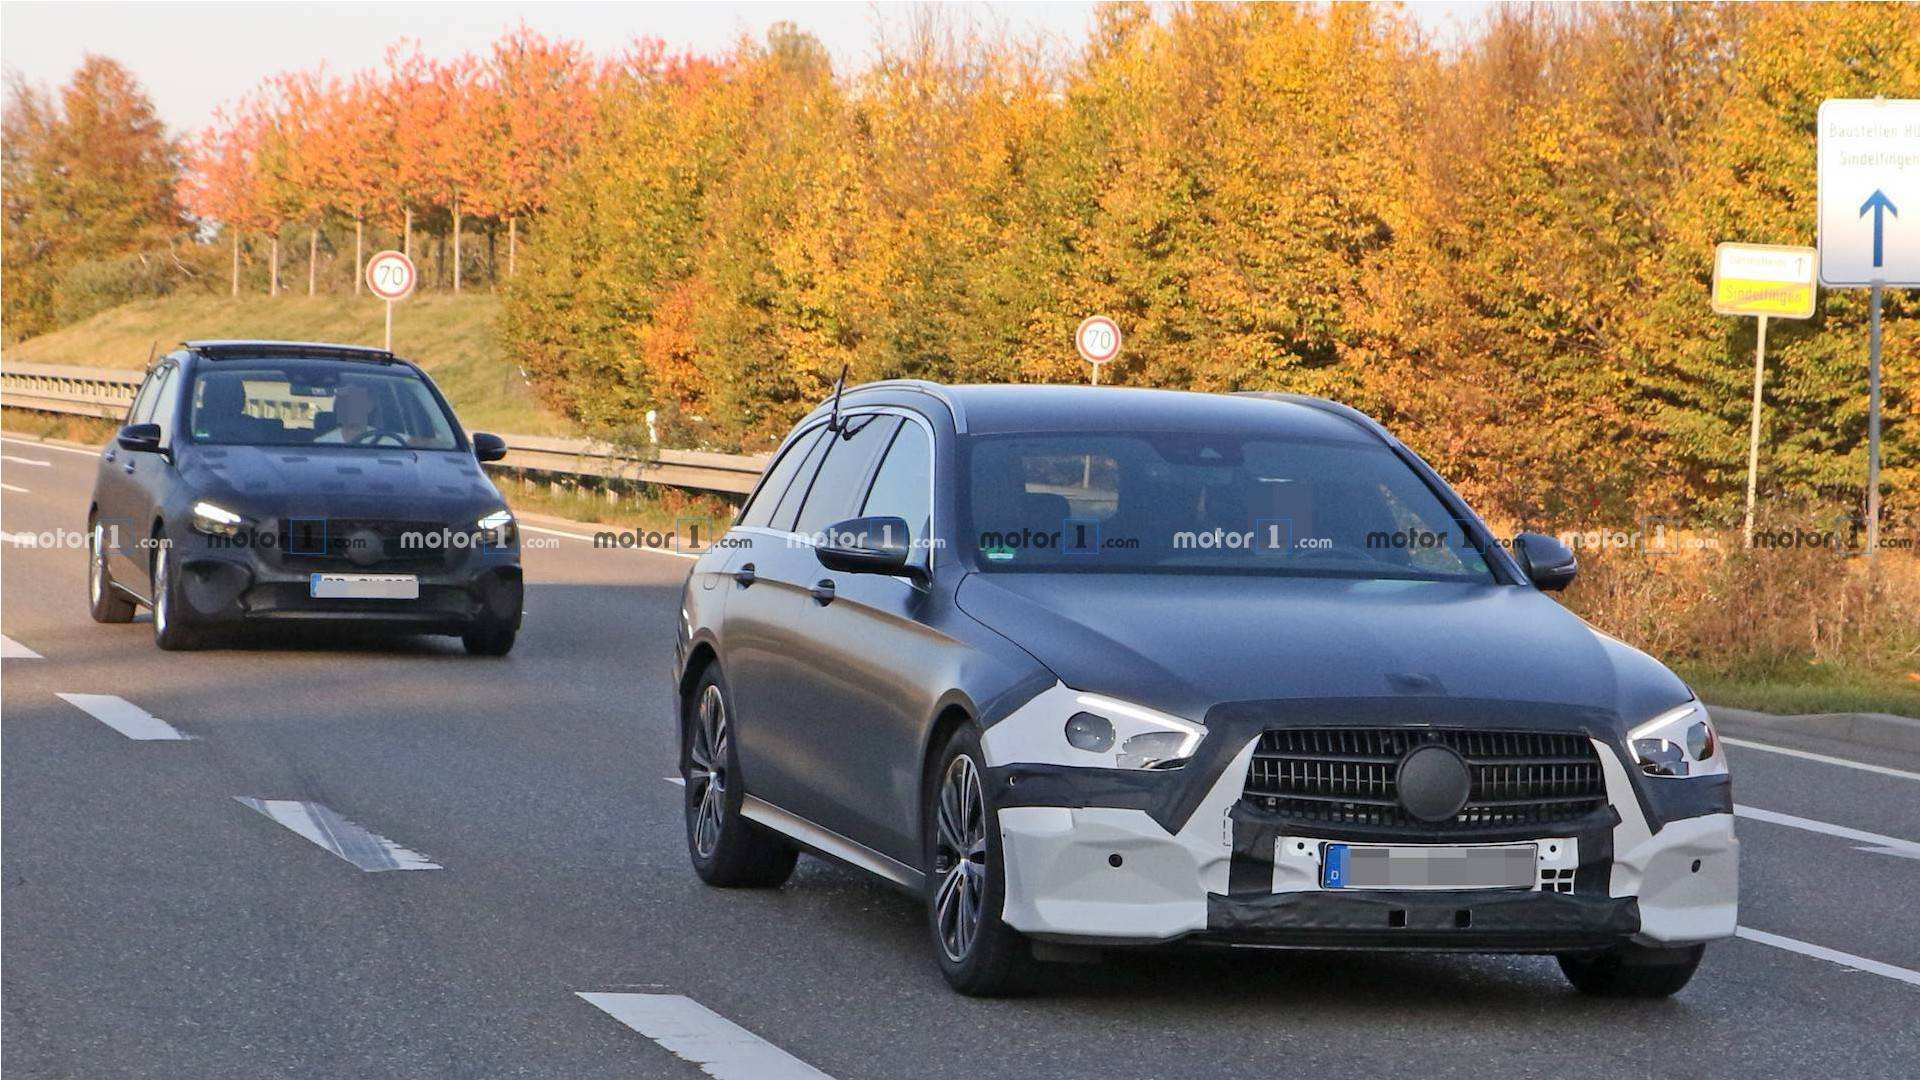 75 Gallery of 2020 The Spy Shots Mercedes E Class Review with 2020 The Spy Shots Mercedes E Class